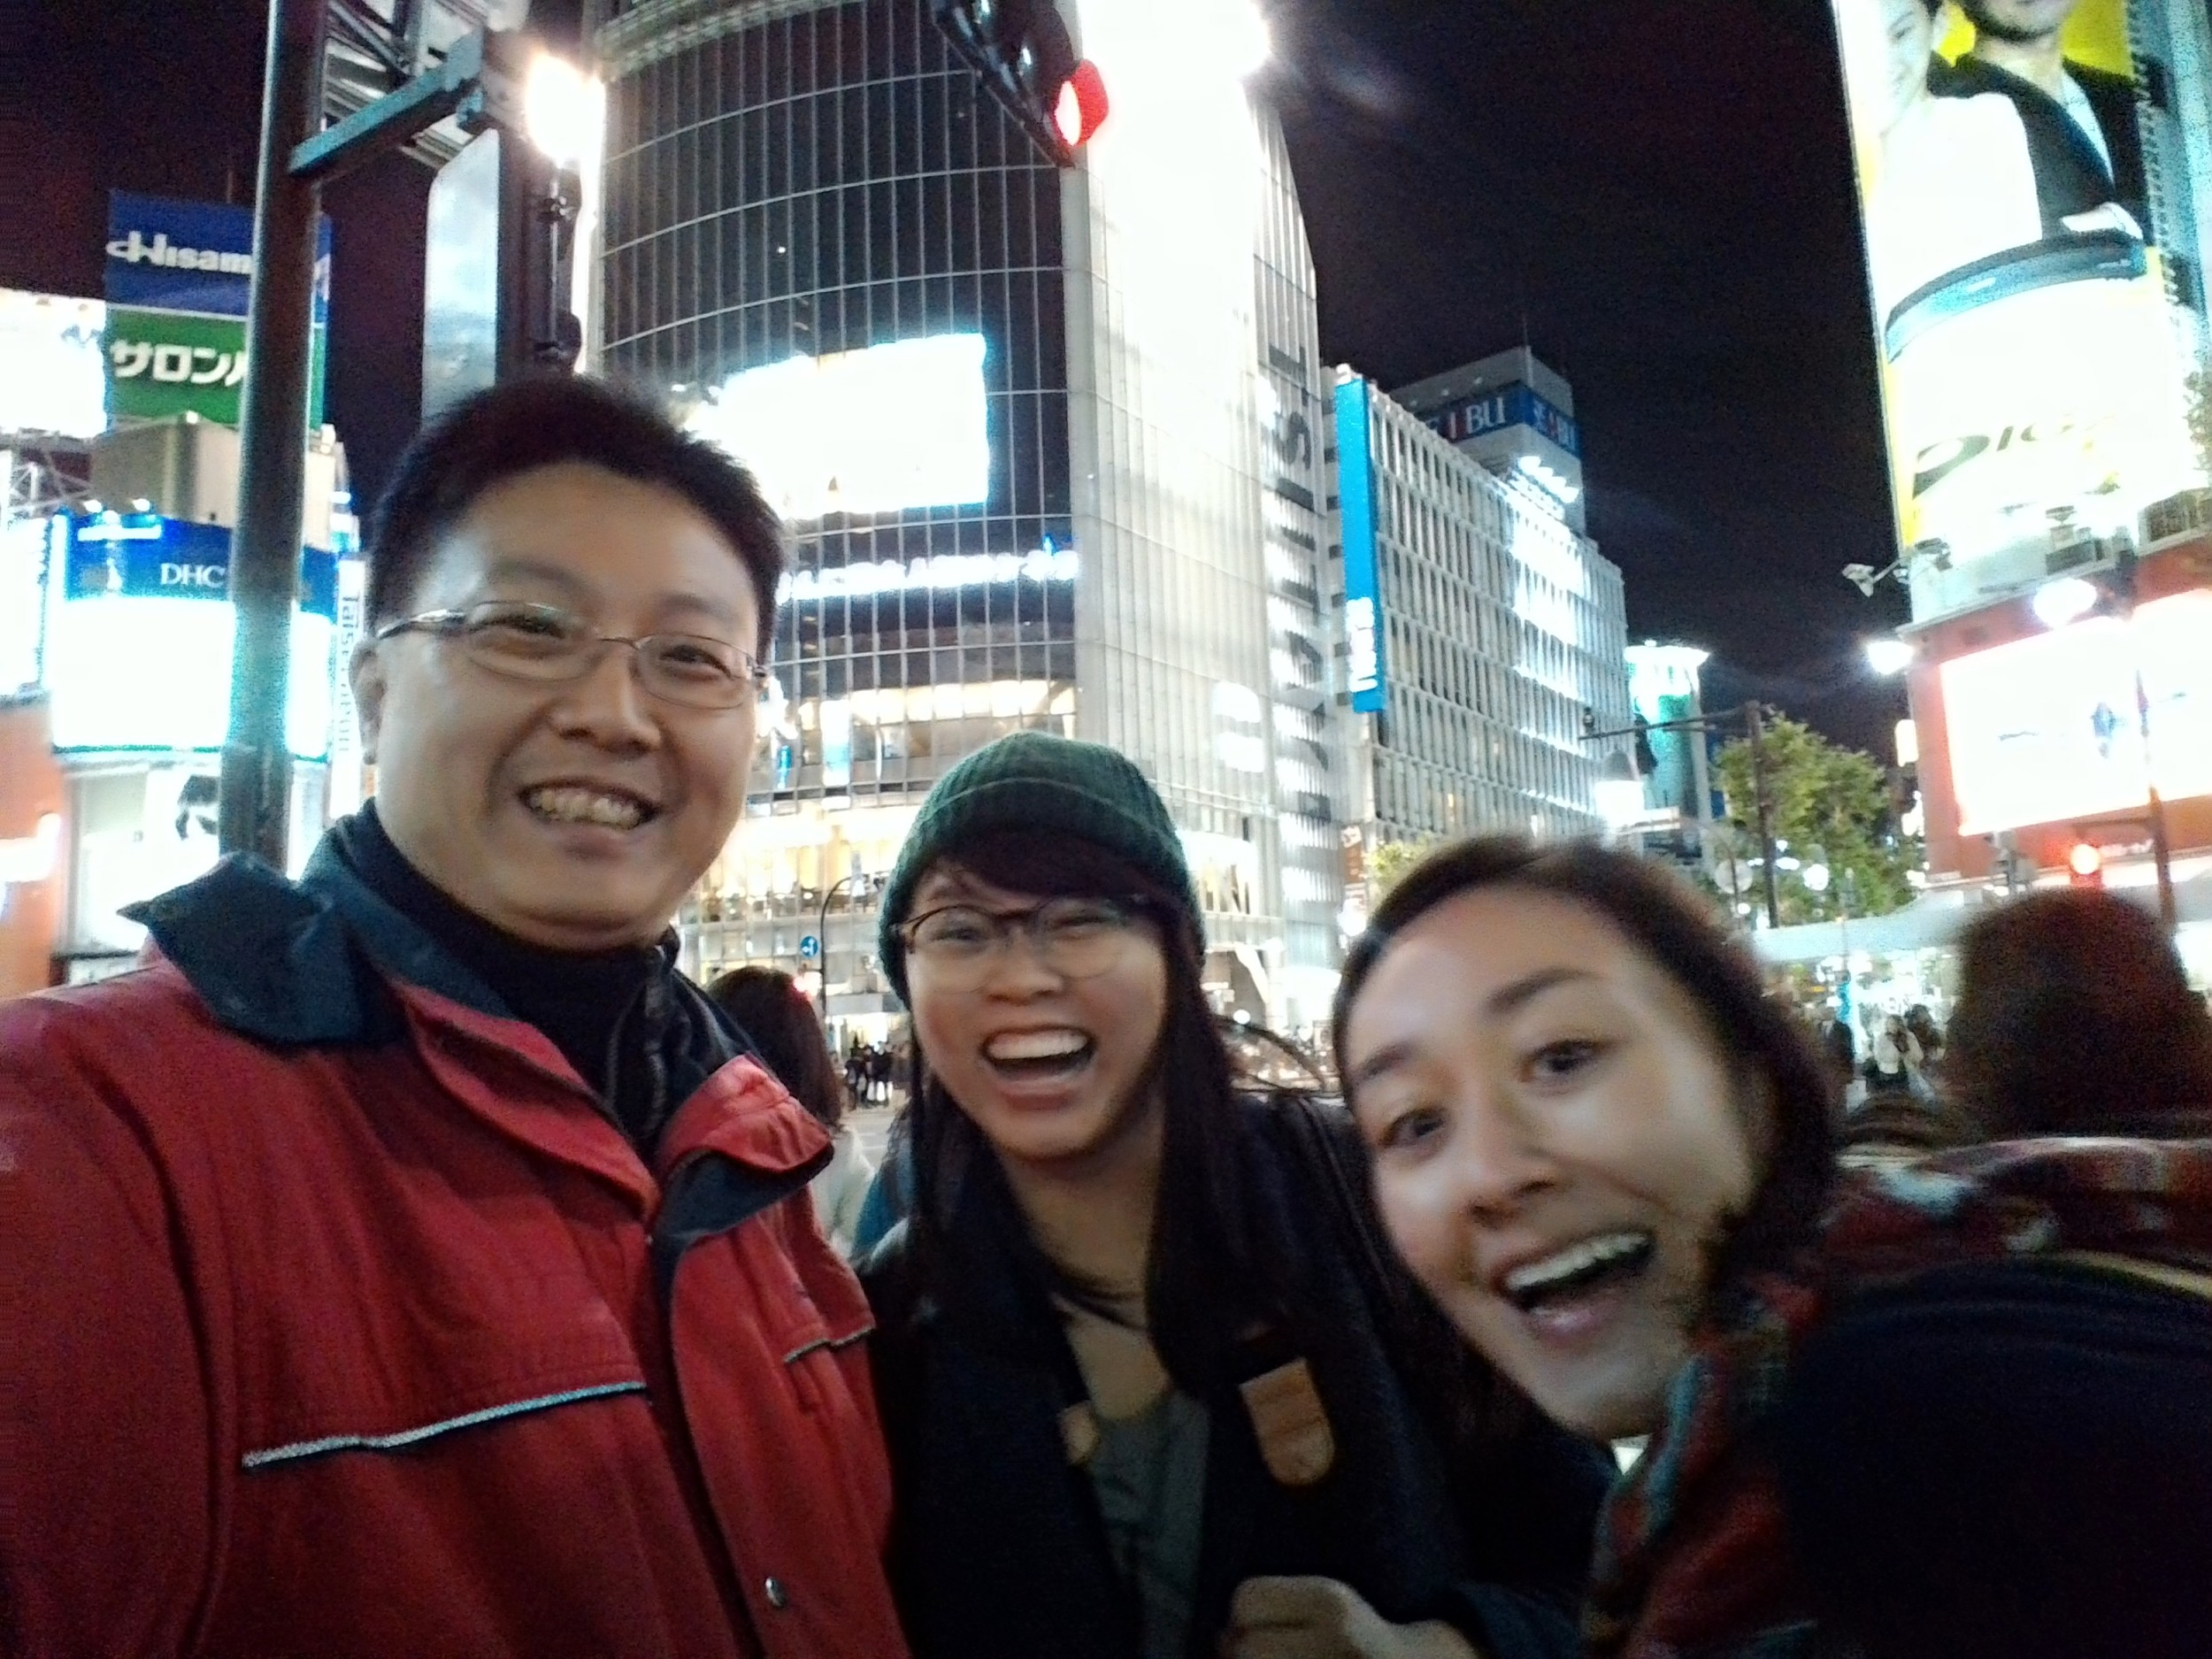 The team getting overexcited in Shibuya